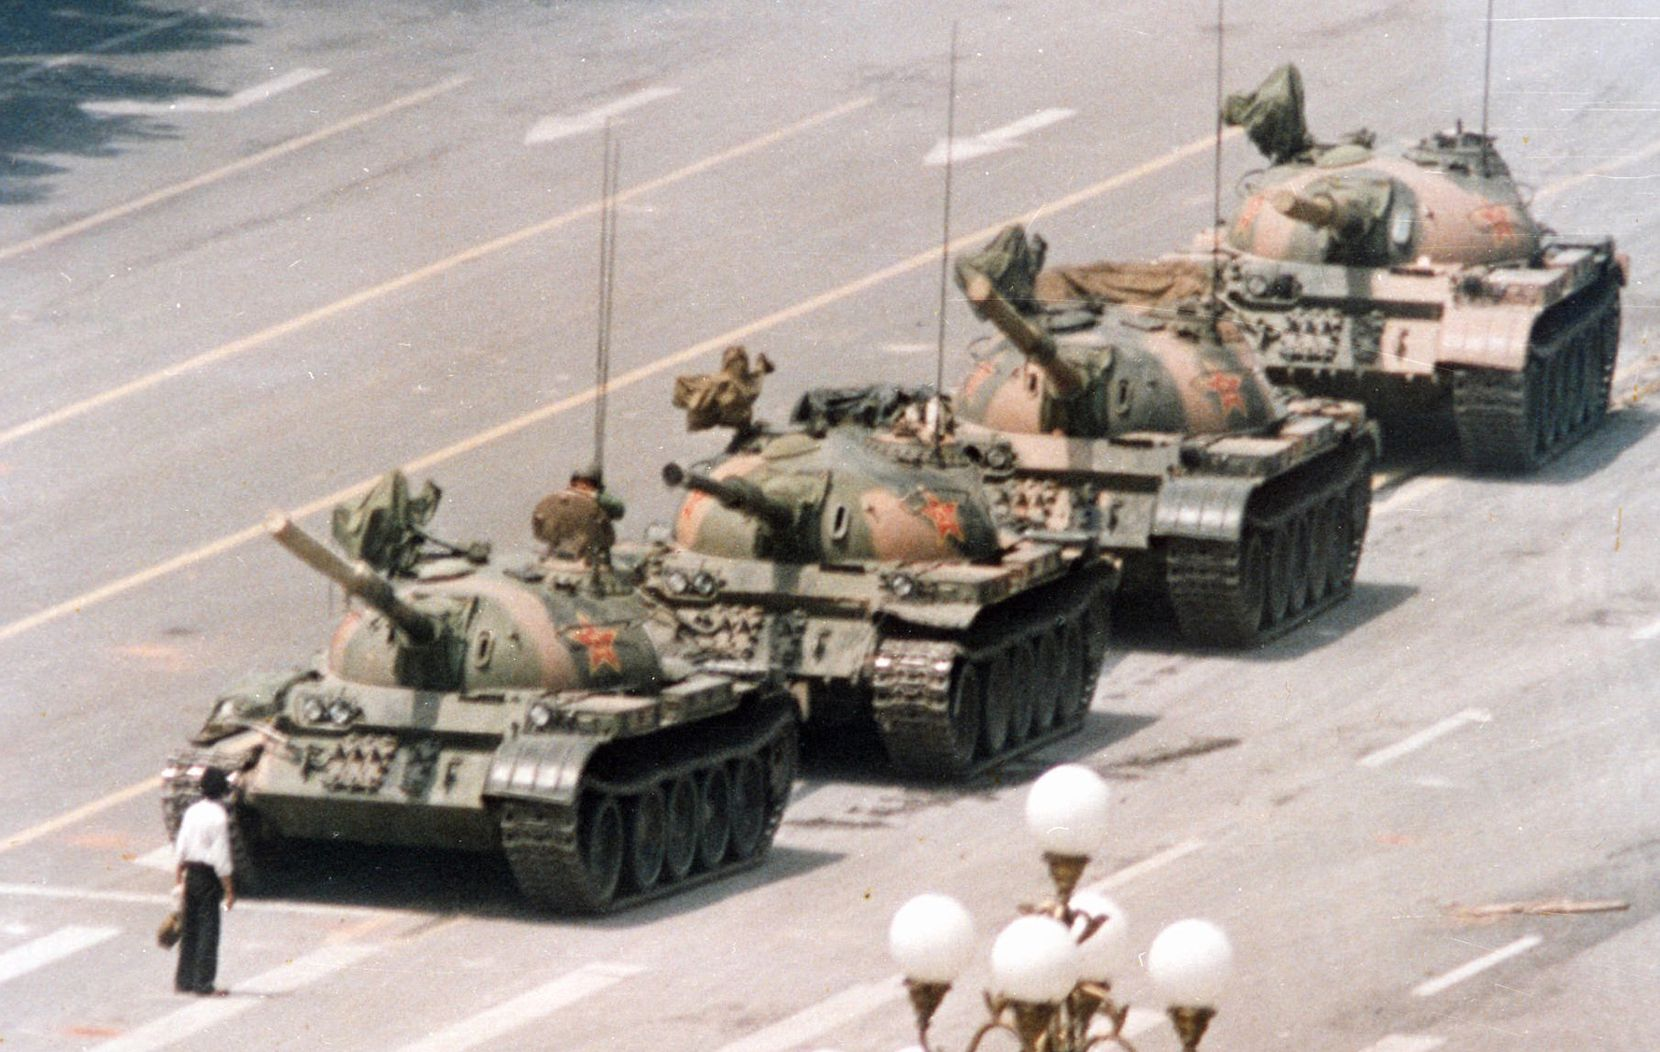 A Chinese man stands in front of a line of tanks in Beijing stopping their advance down Beijing's Cangan Boulevard, near Tiananmen Square, on June 5, 1989, during the crackdown on China's democracy movement.